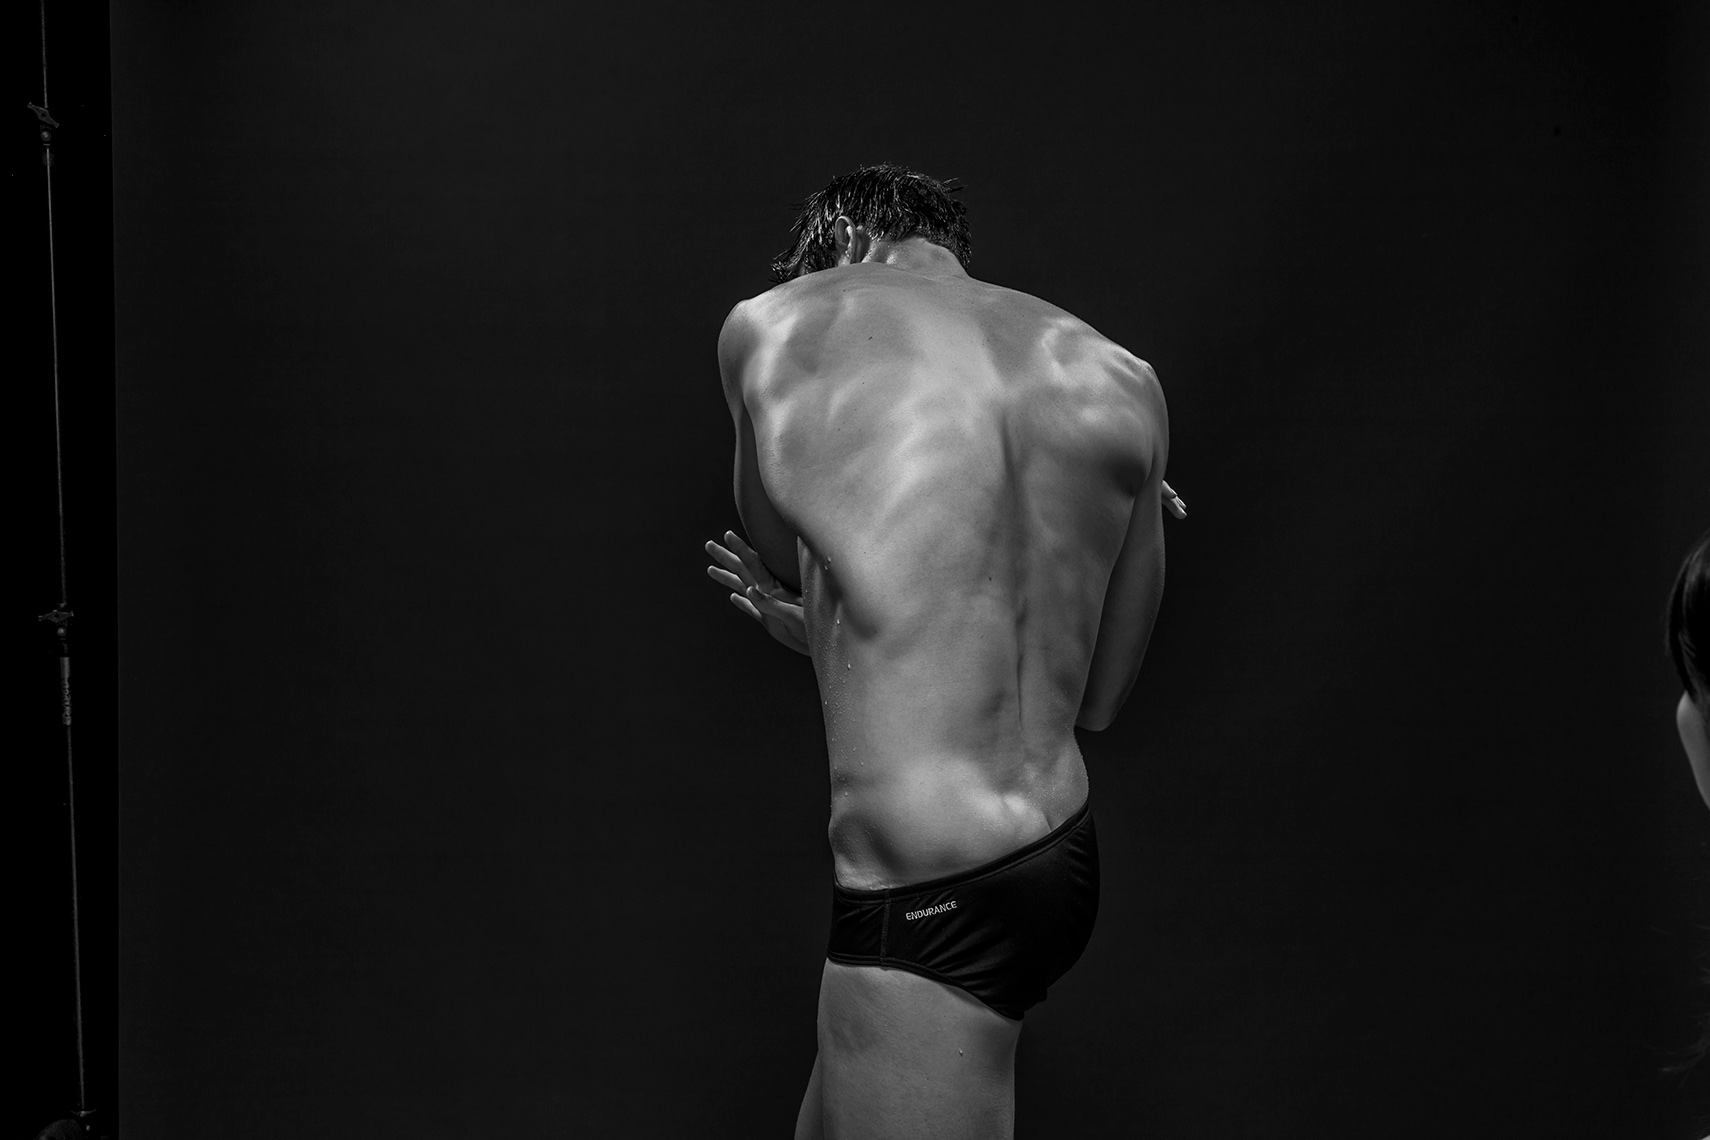 ADAM_TAYLOR_JAMES_MAGNUSSEN_03